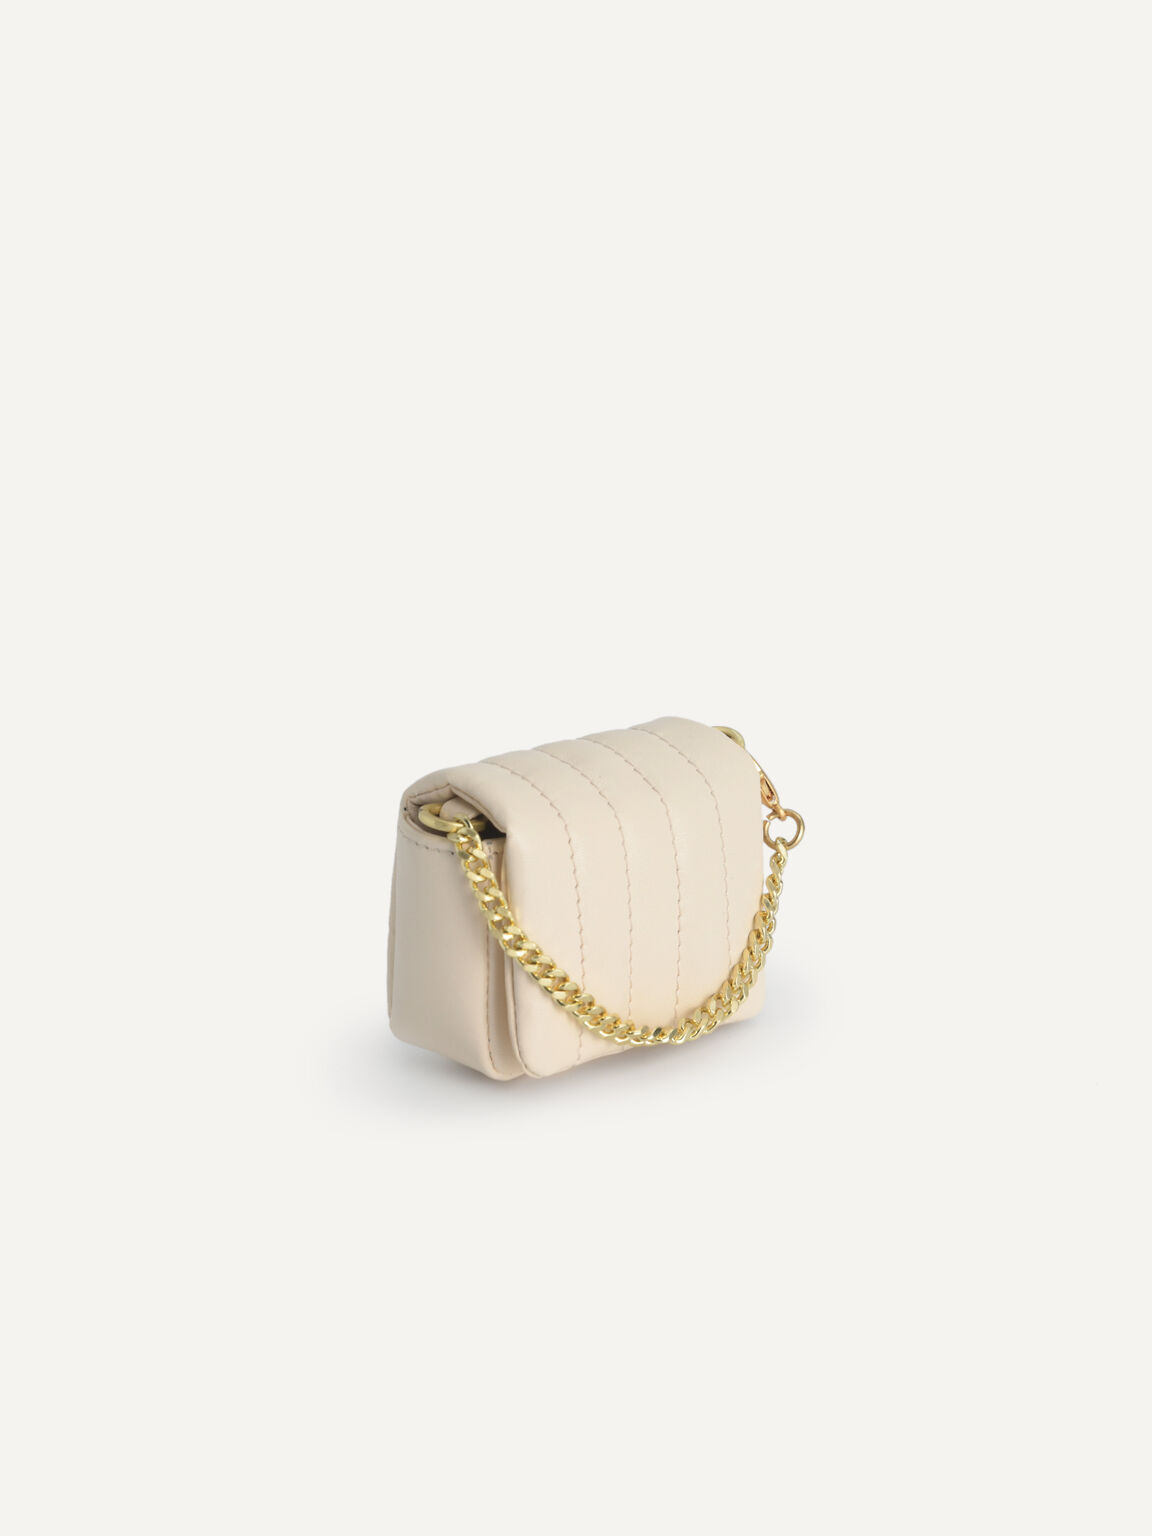 Padded Leather Pouch, Beige, hi-res